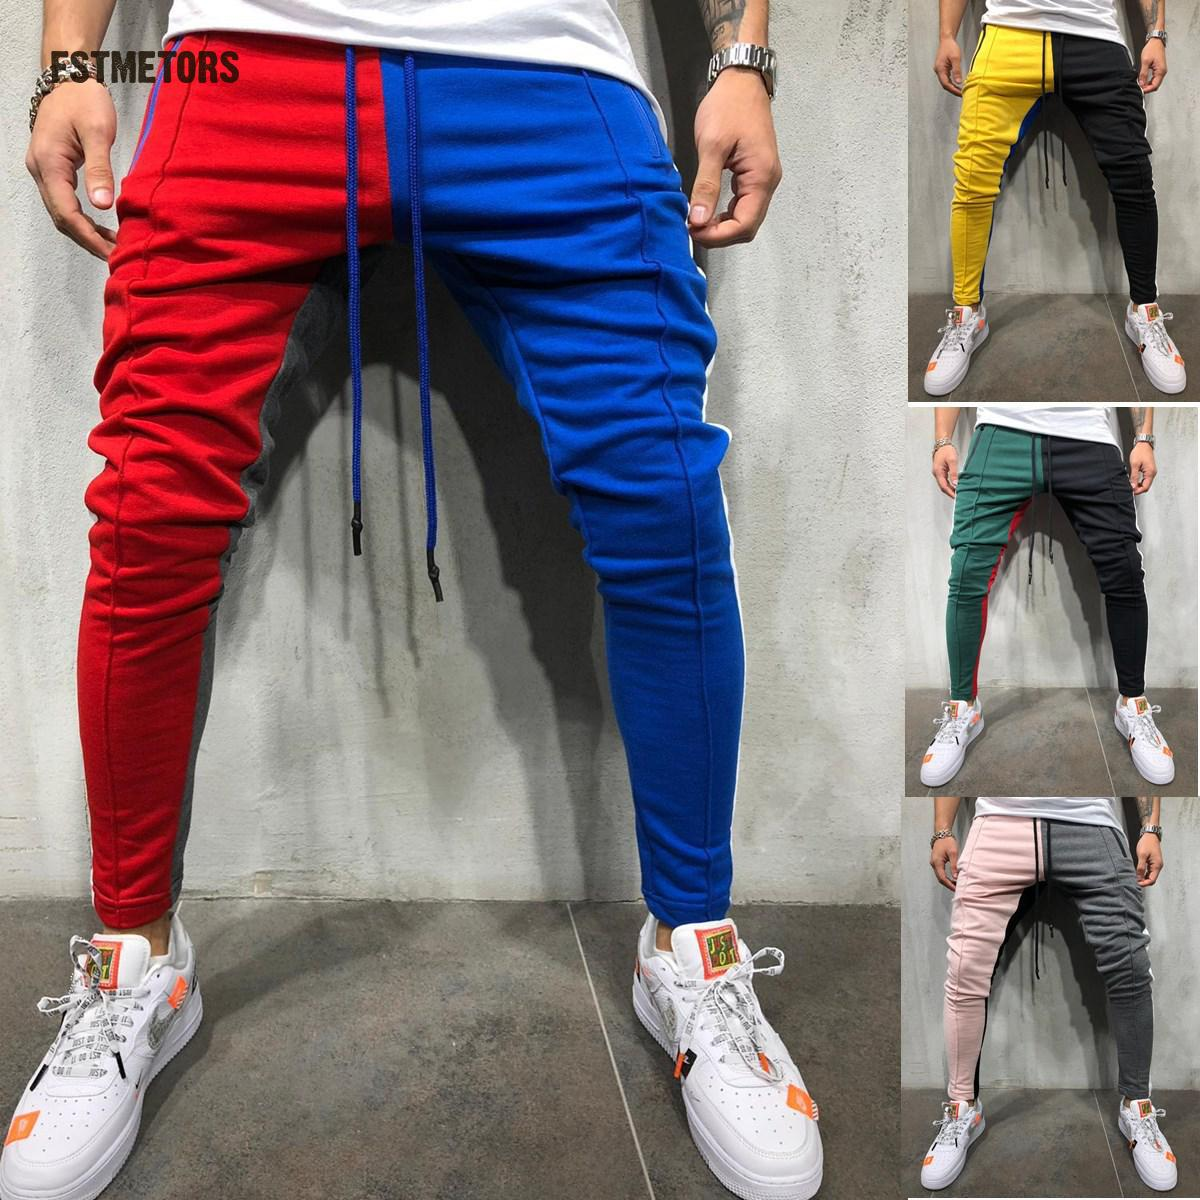 2018 Men's Pants Casual Fashion Color Matching Design Personality Sports Hip Hop Wind Men's Slim Feet Pants An Enriches And Nutrient For The Liver And Kidney